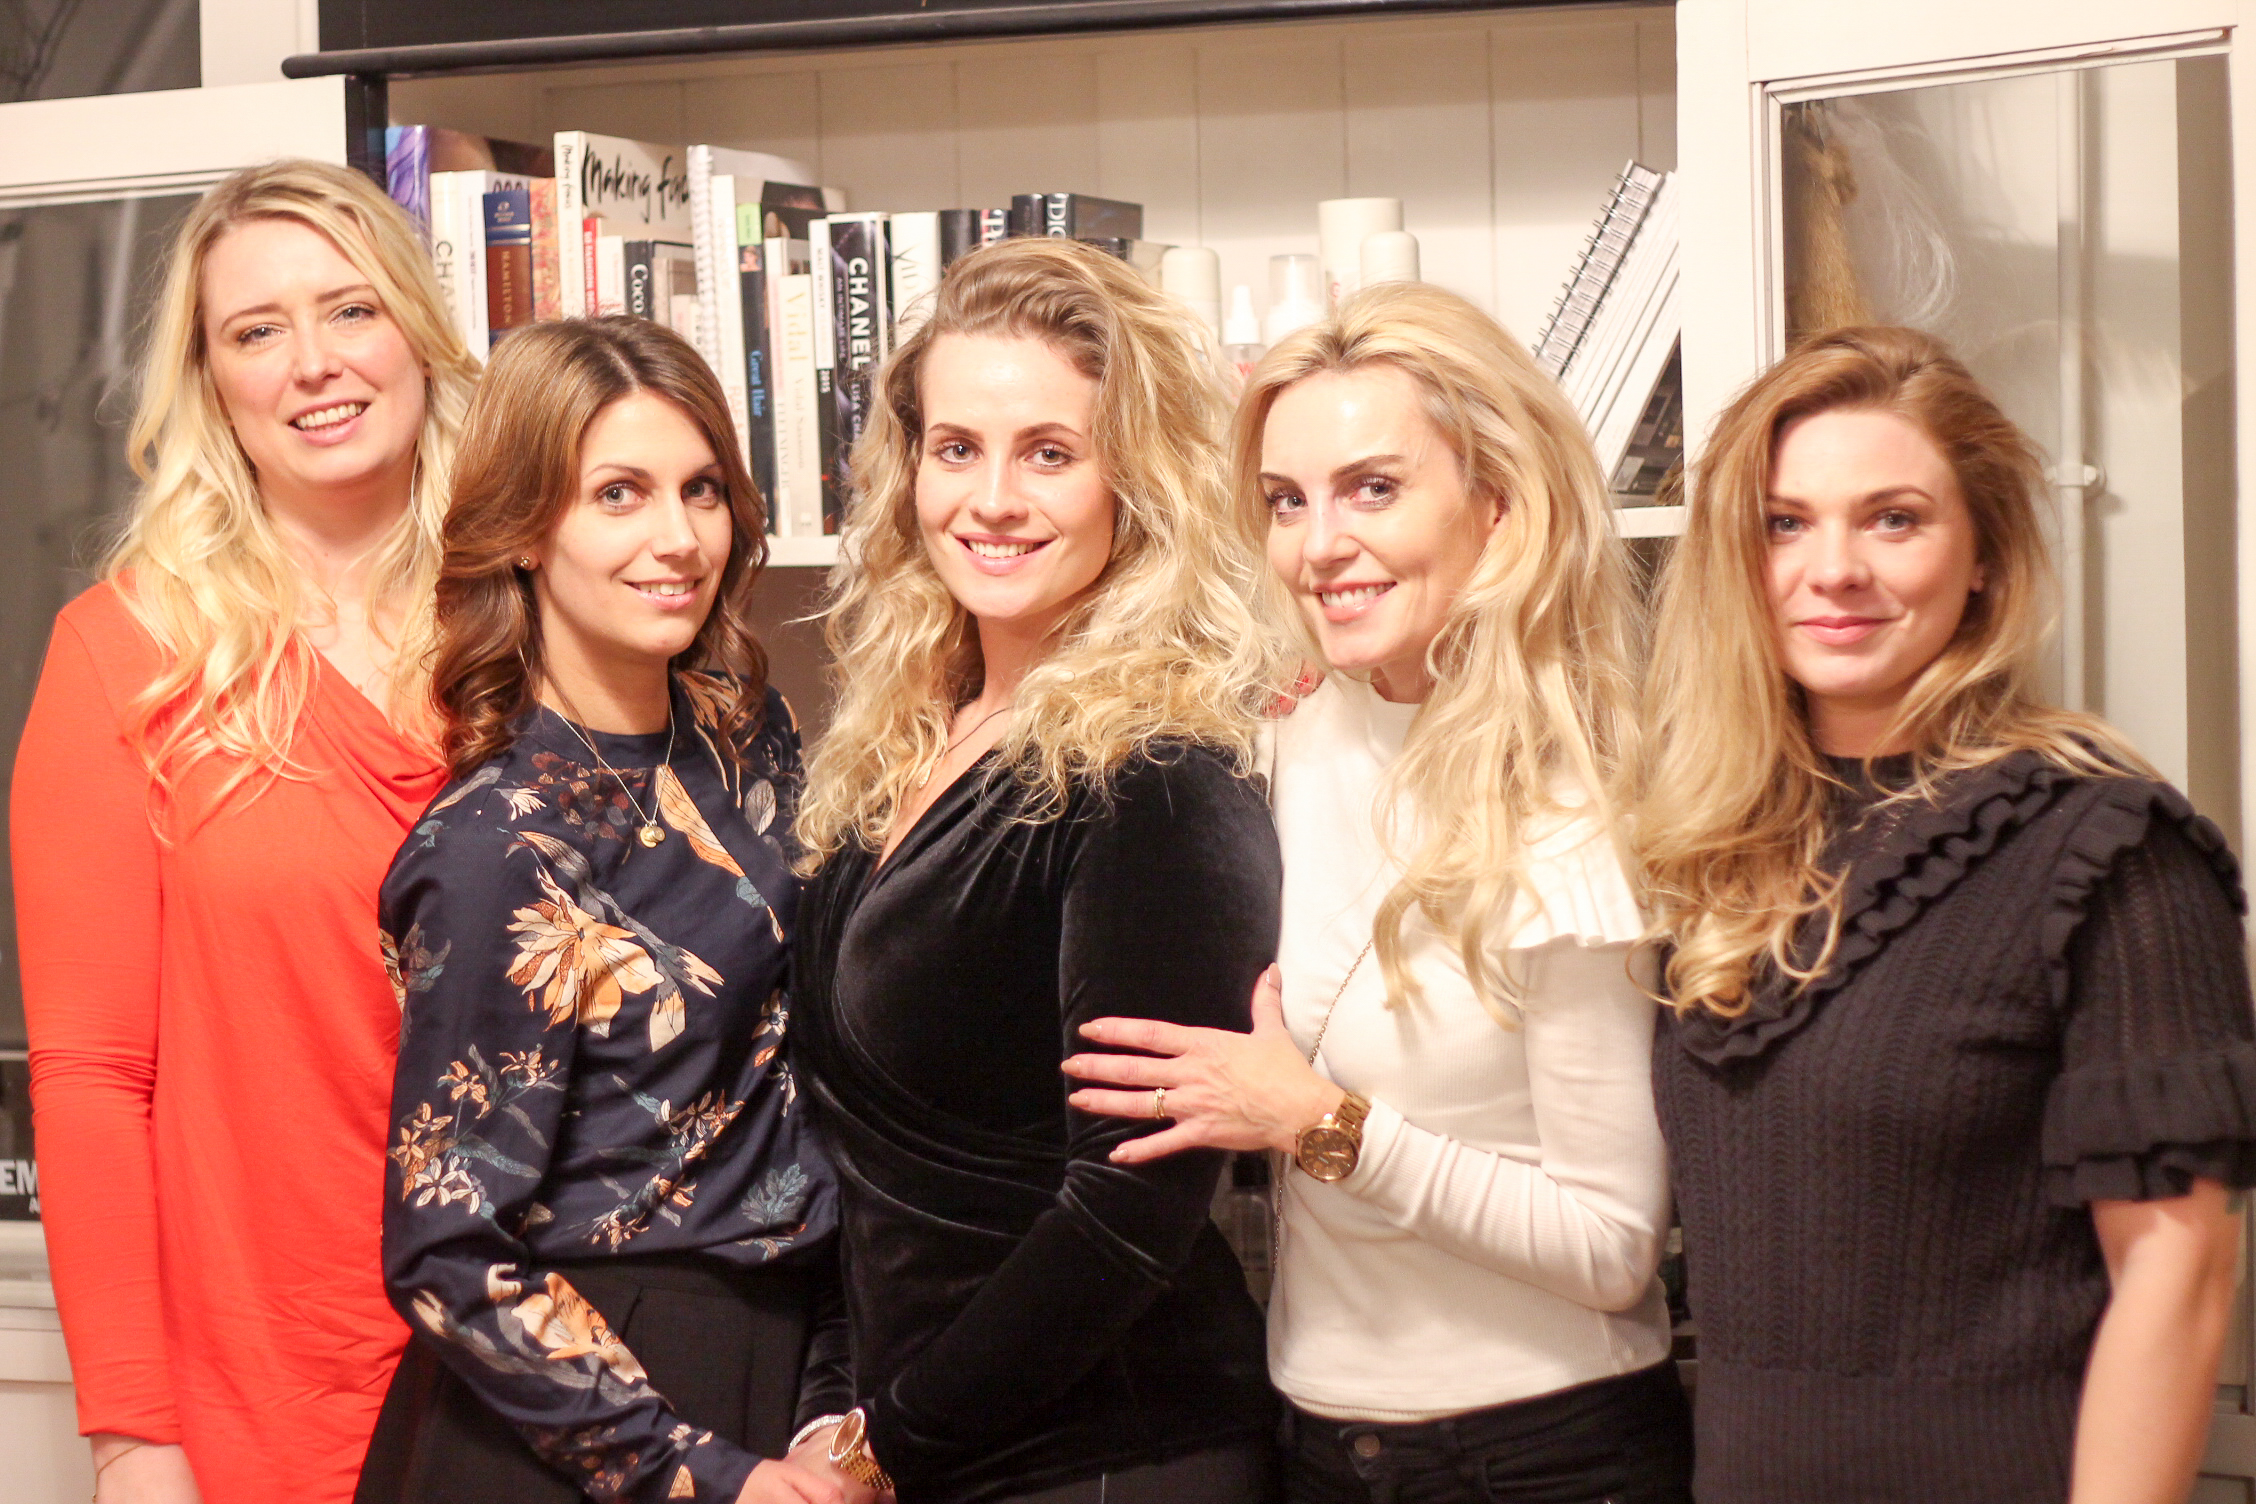 Odense look outfit blogger fra odense odenseblogger bloggerevent blogger event frisør tine balle & team hairstudio beautified